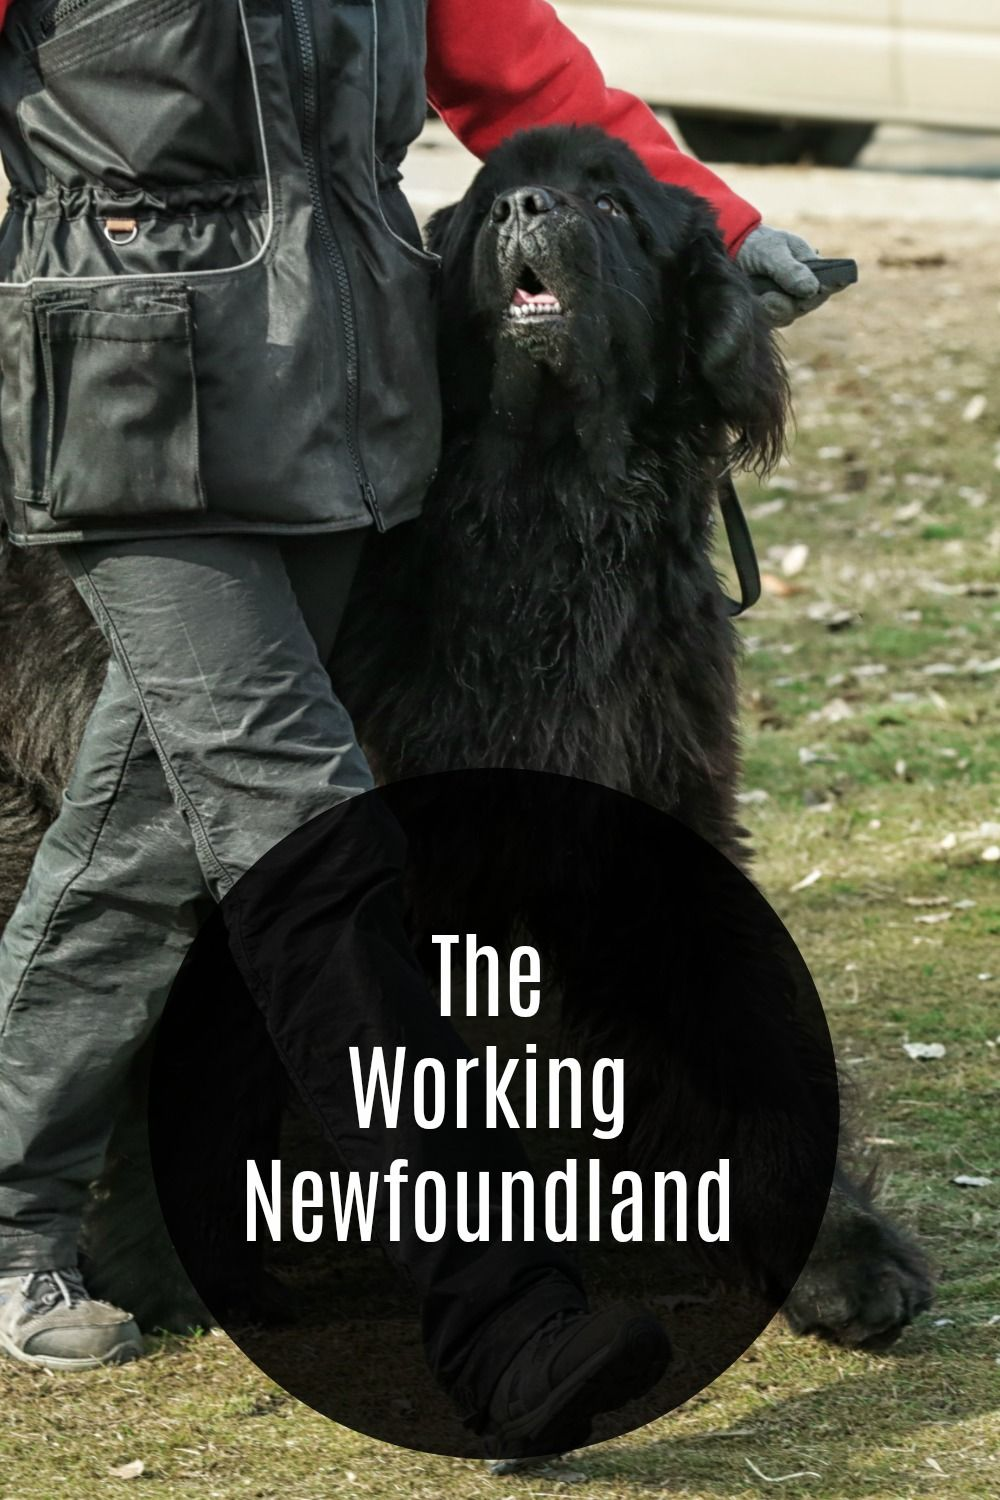 The Newfoundland is a strong, intelligent dog that is in the Working Group. Their desireness to please their owners makes them excel at many jobs that other dogs can not do. #newfoundlanddog #newfoundland #workingdog #dogs #pets #workingbreed #workinggroup #newf #bigdogs